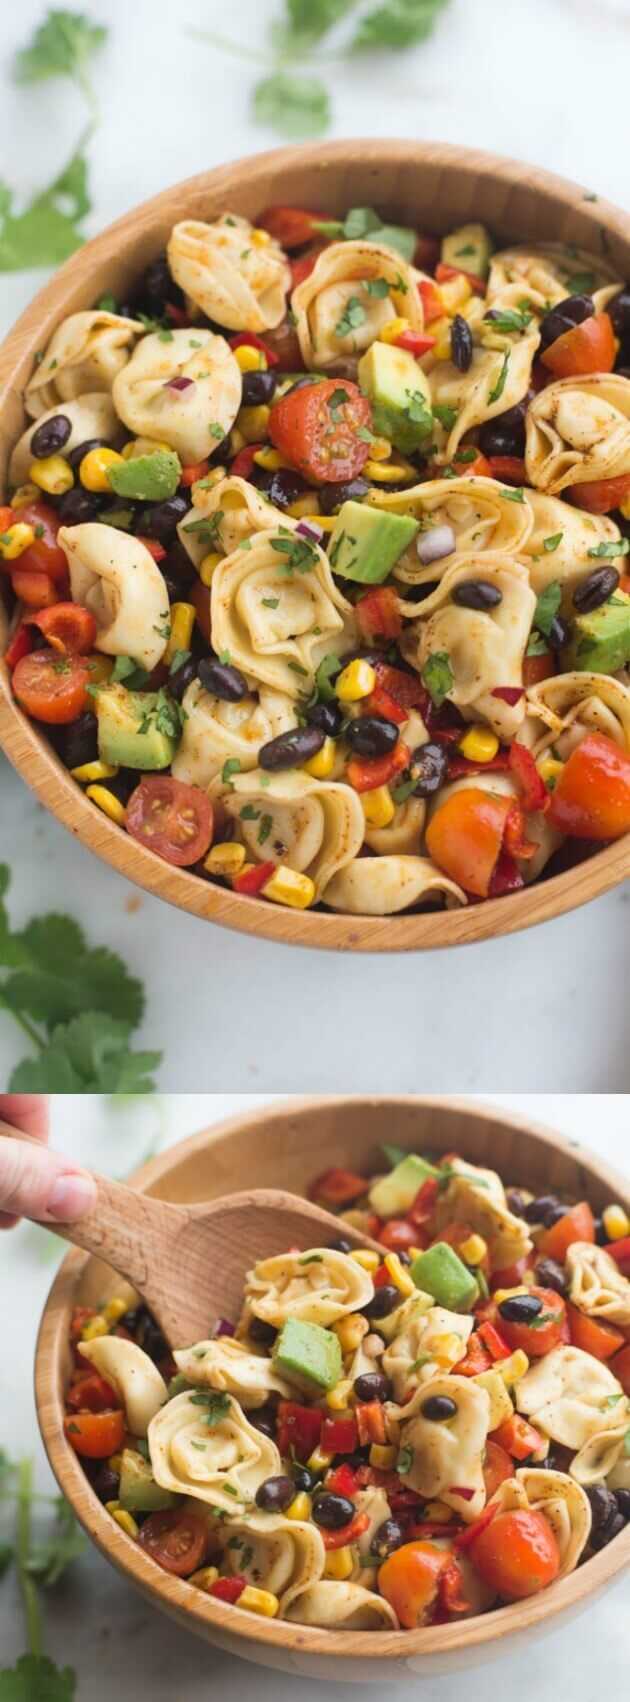 This Southwest Tortellini Pasta Salad from Tastes Better From Scratch is a fresh and easy pasta salad that's ready in less than 30 minutes! It's loaded with fresh veggies and coated in a deliciously simple and healthy southwest dressing!